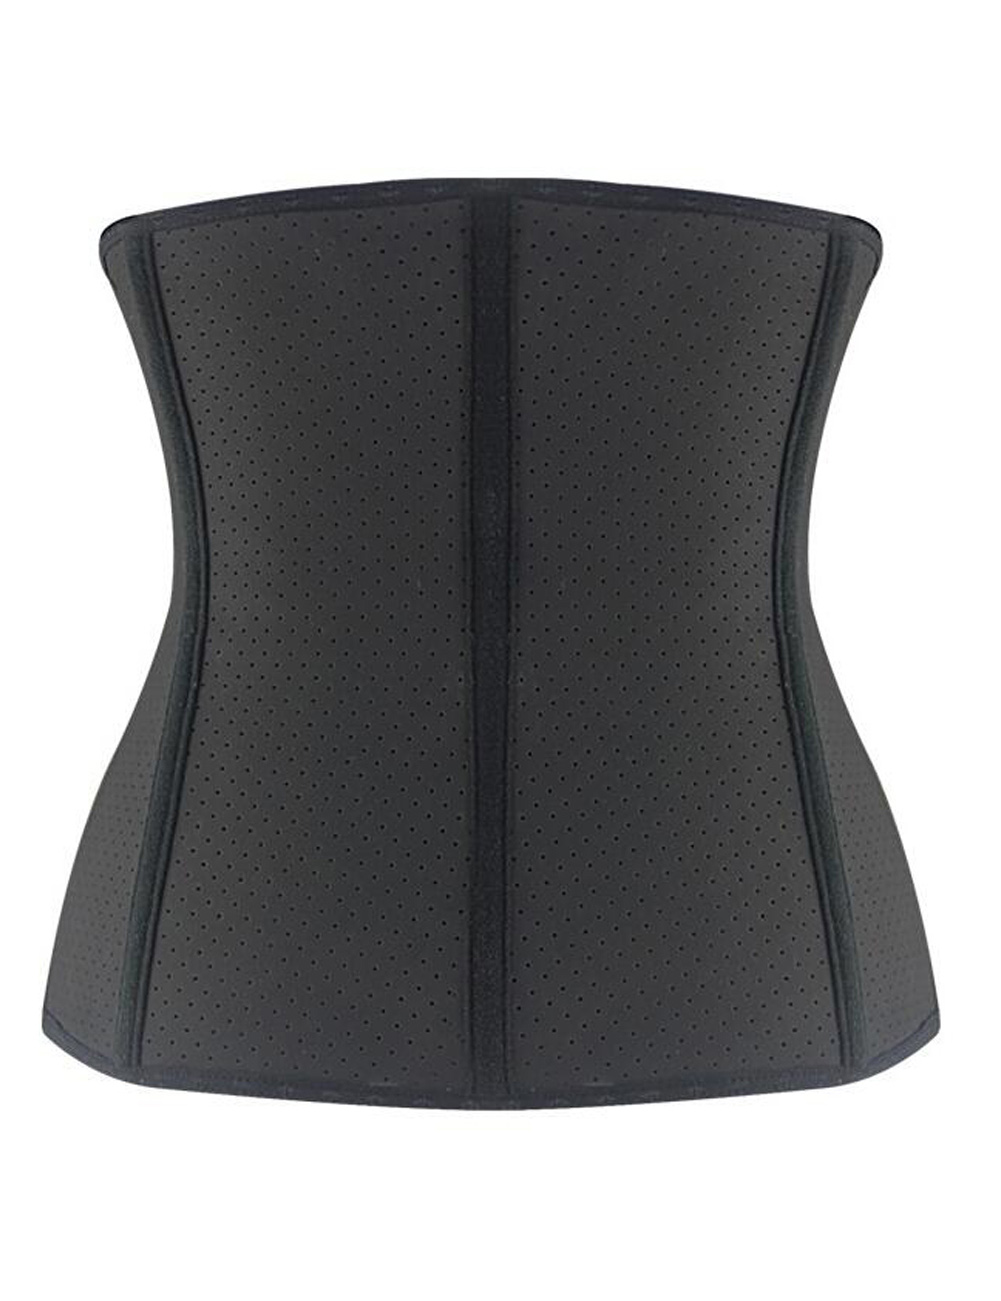 //cdn.affectcloud.com/hexinfashion/upload/imgs/Shaper/Waist_Trainer/B180012BK01/B180012BK01-201911065dc2a91aac986.jpg